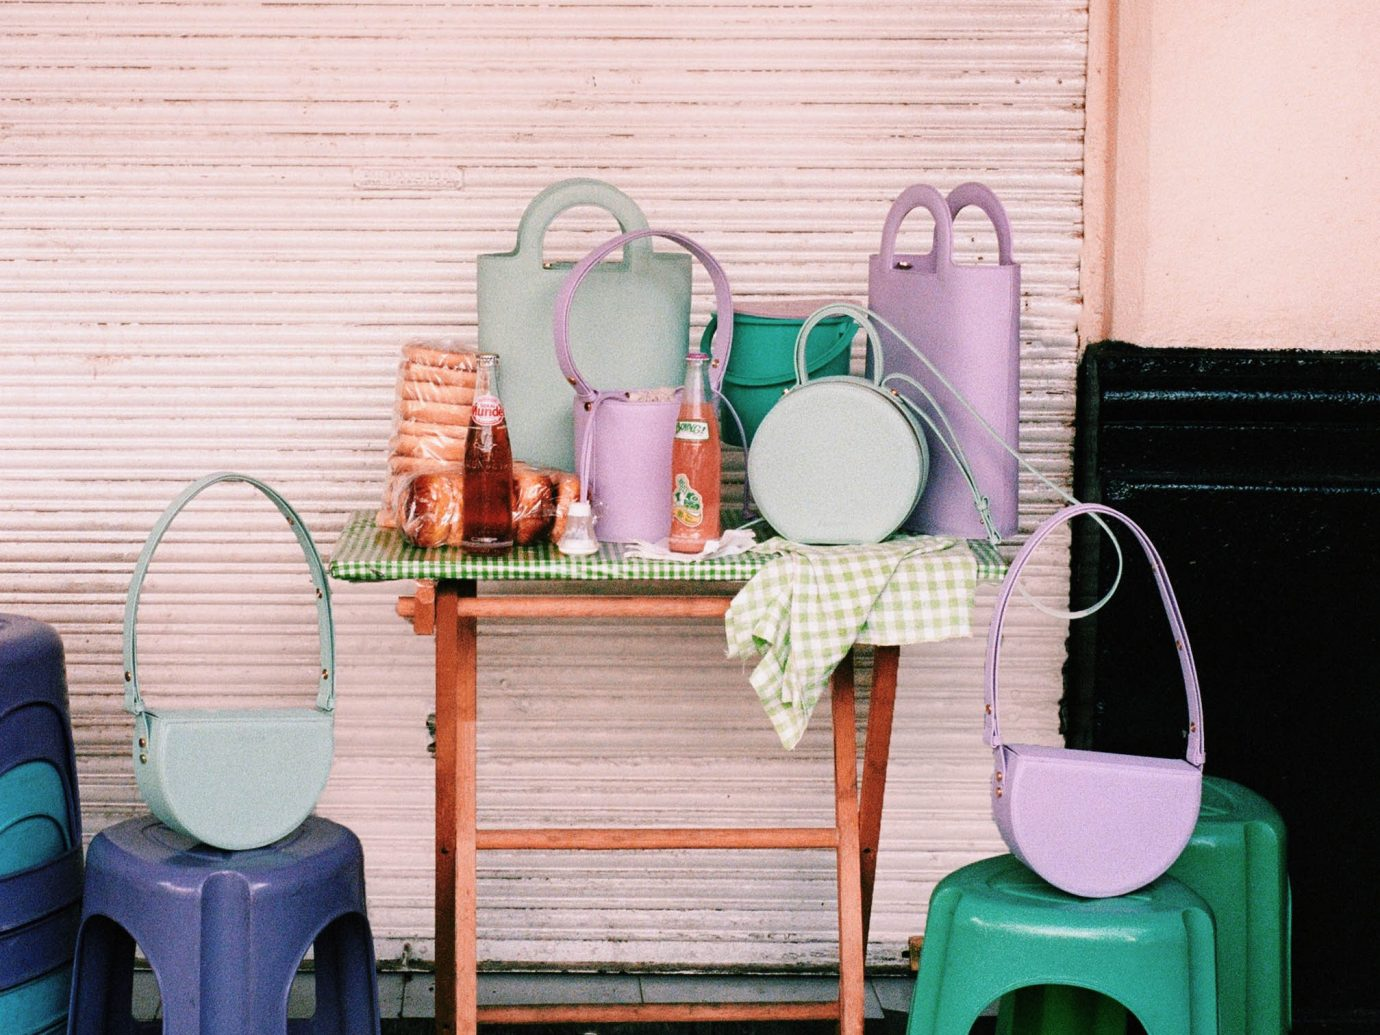 Still life of purses set up in front of a garage